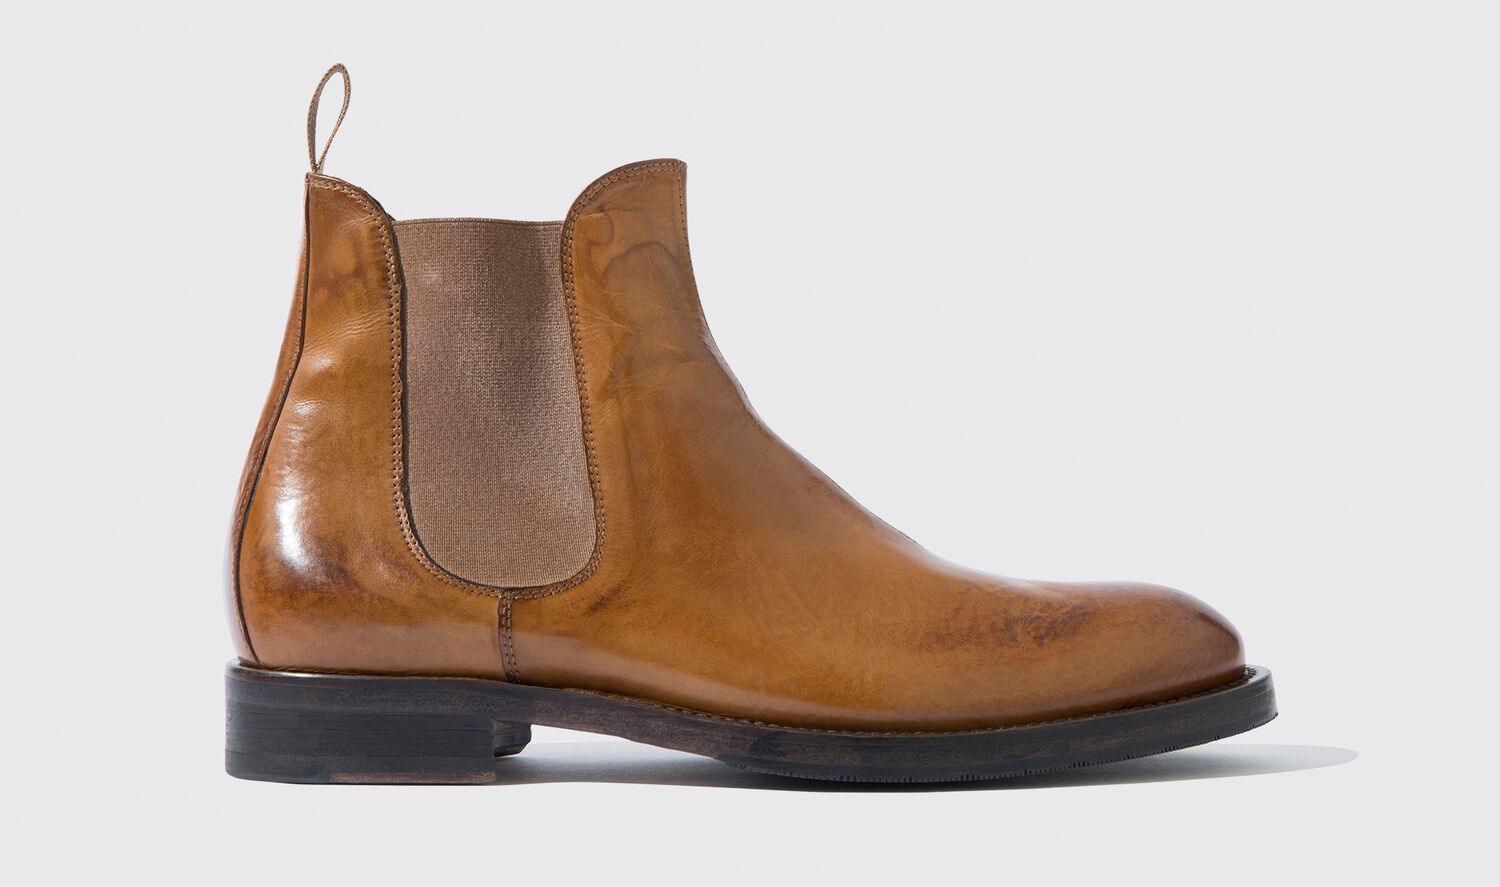 Image of Boots Italian Shoe Scarosso male Dean Peanut Brown washed calfskin Calf Leather 45